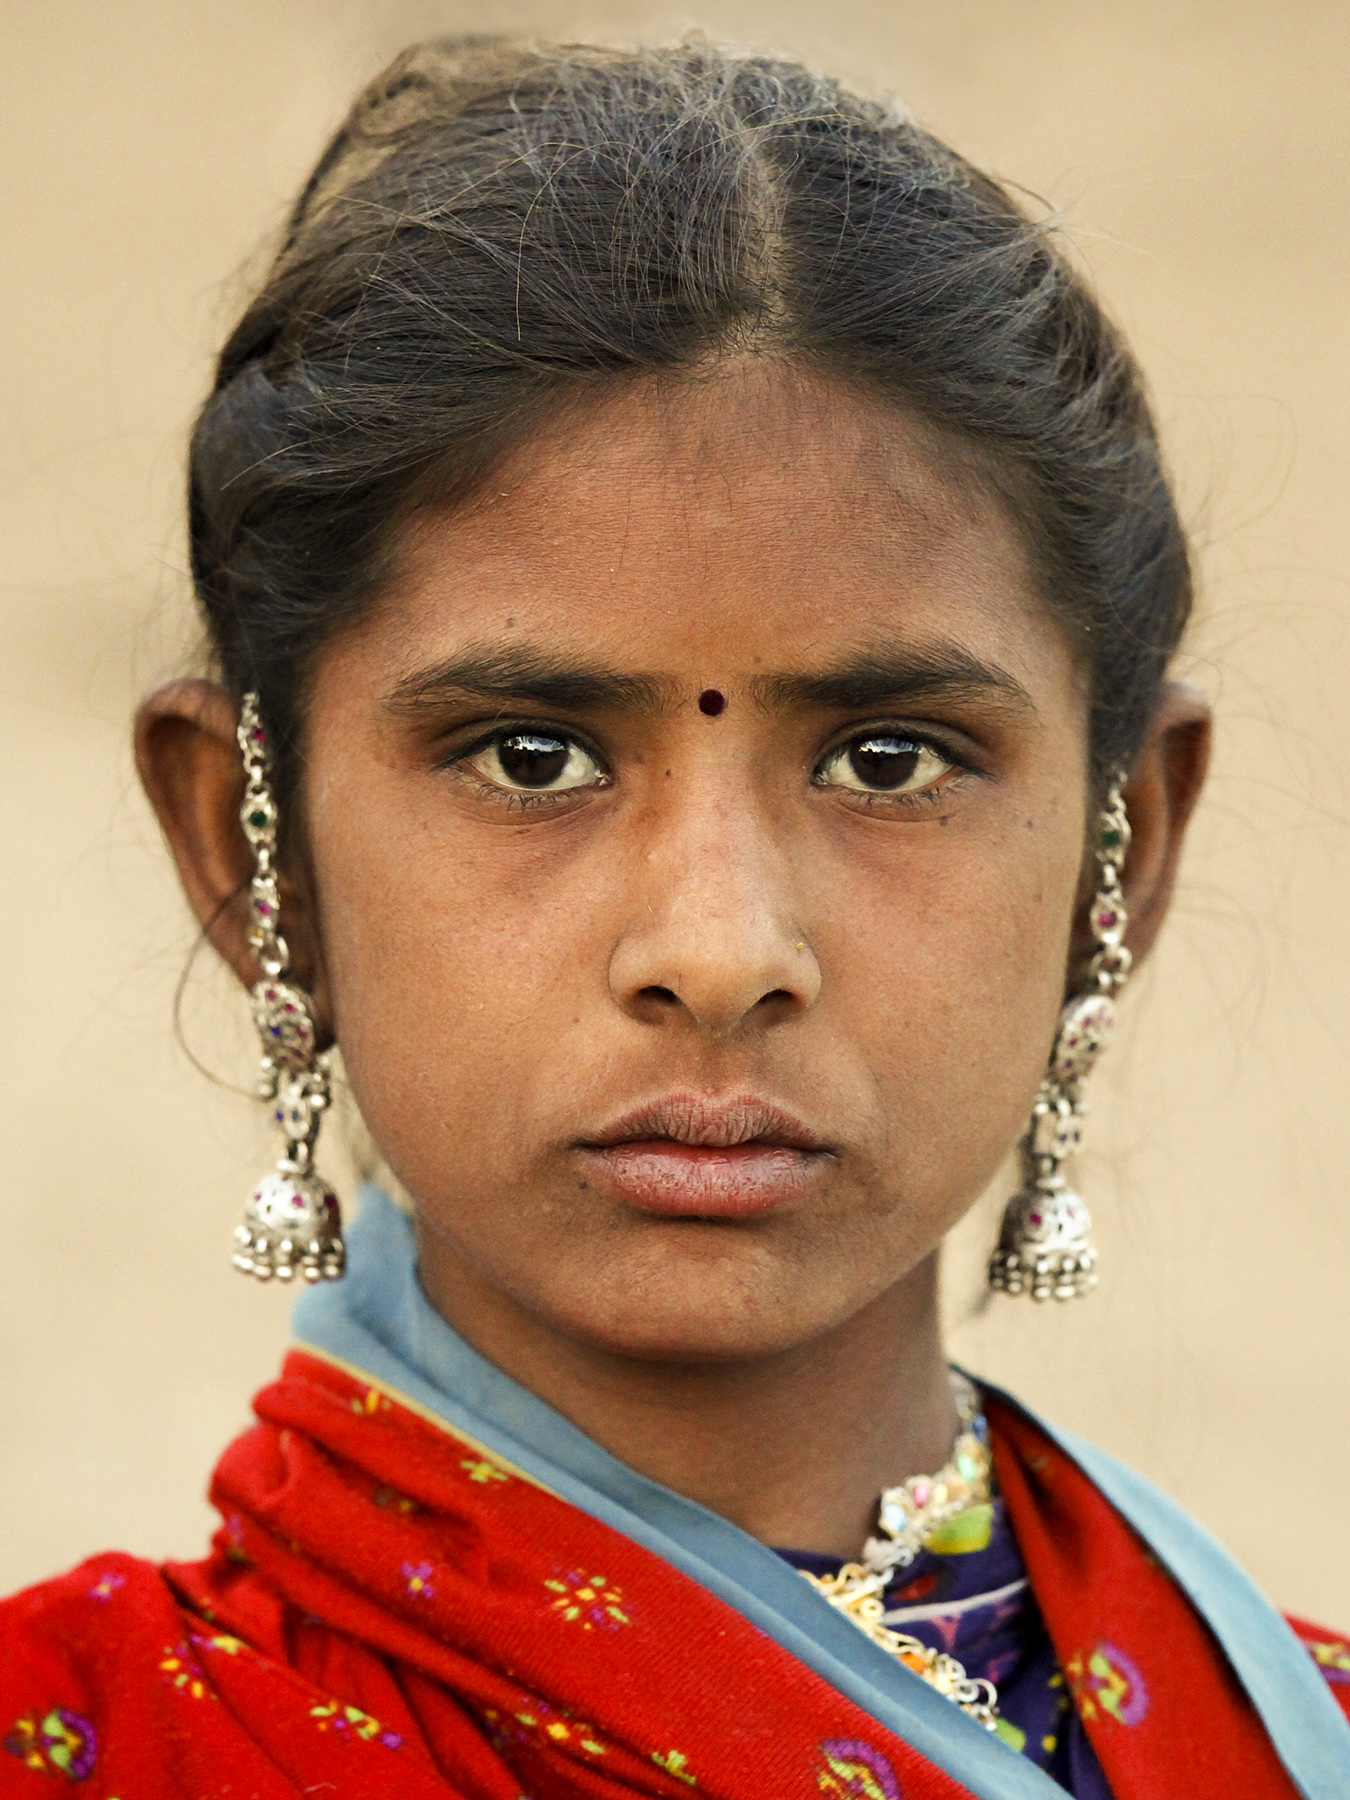 Brian_Jones_Women of India_Women of India - Rajasthan 2_2.jpg